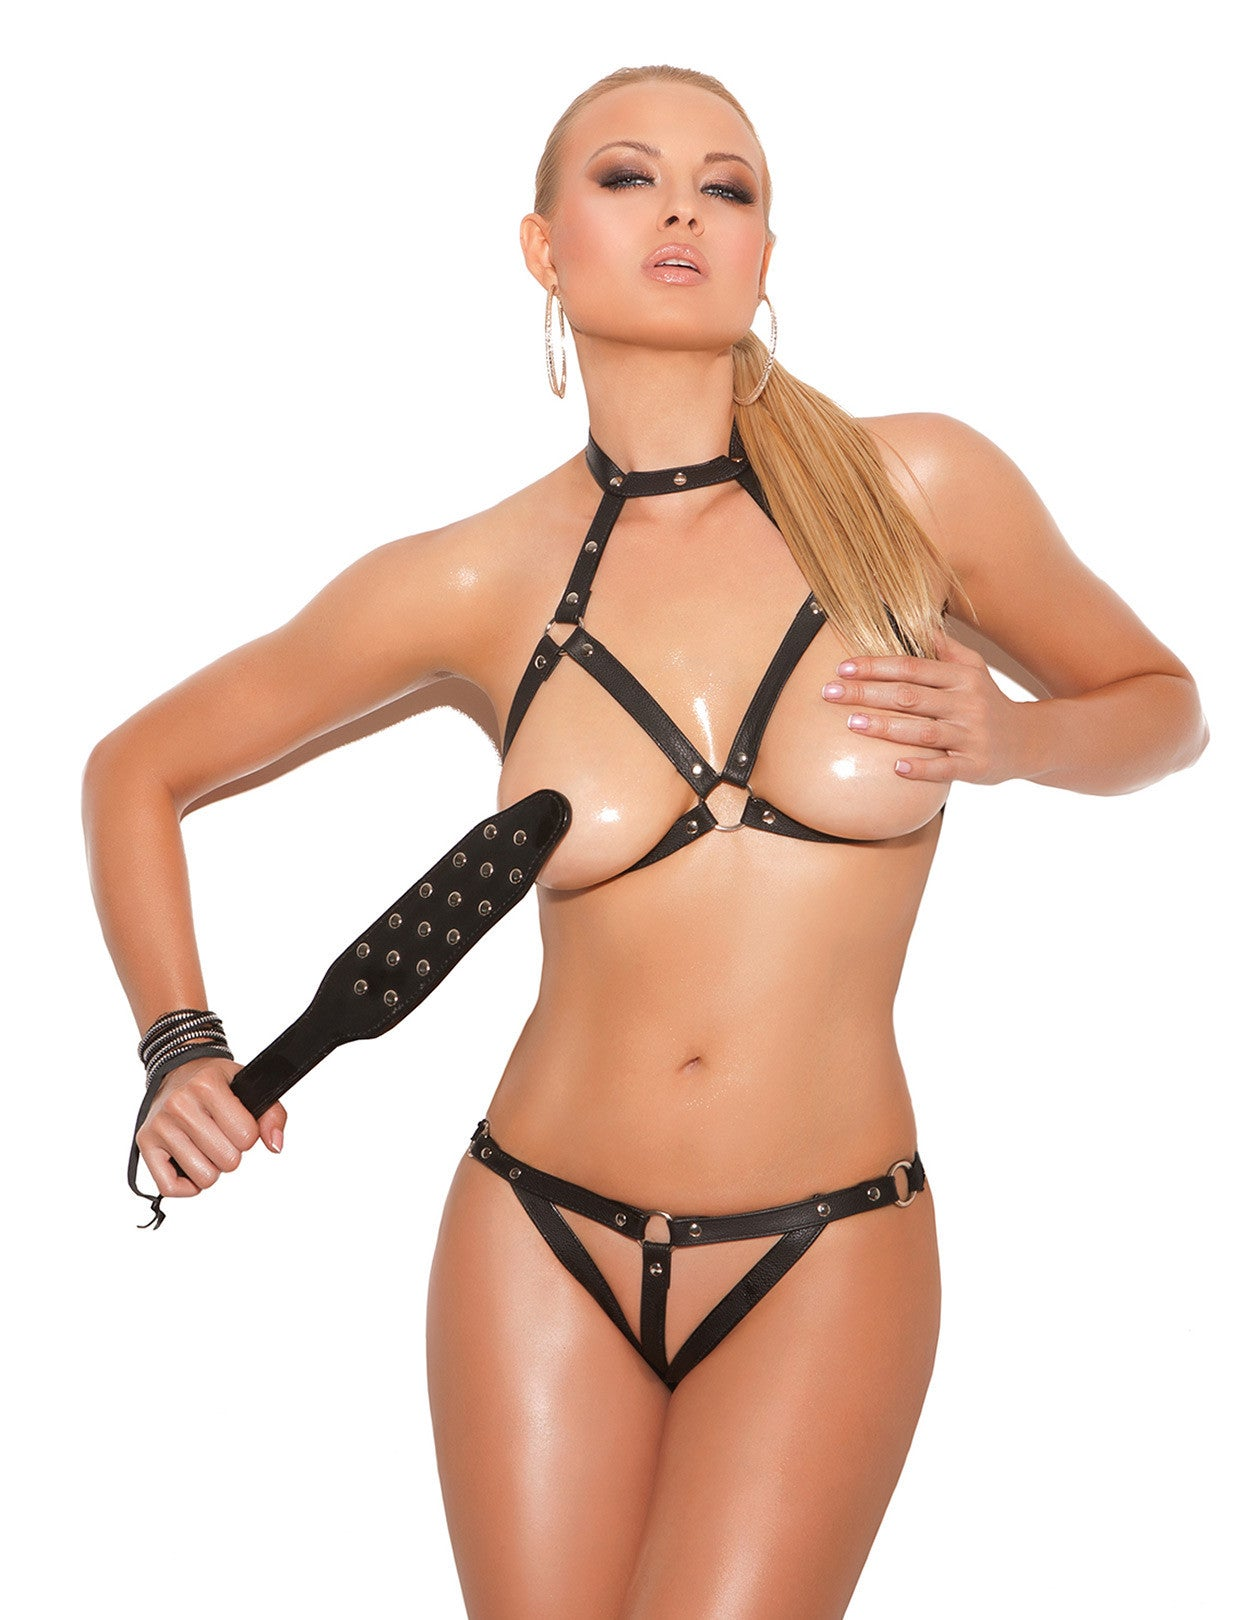 Leather Open Cup Bra and Crotchless G-String - just damn sexy  - 1